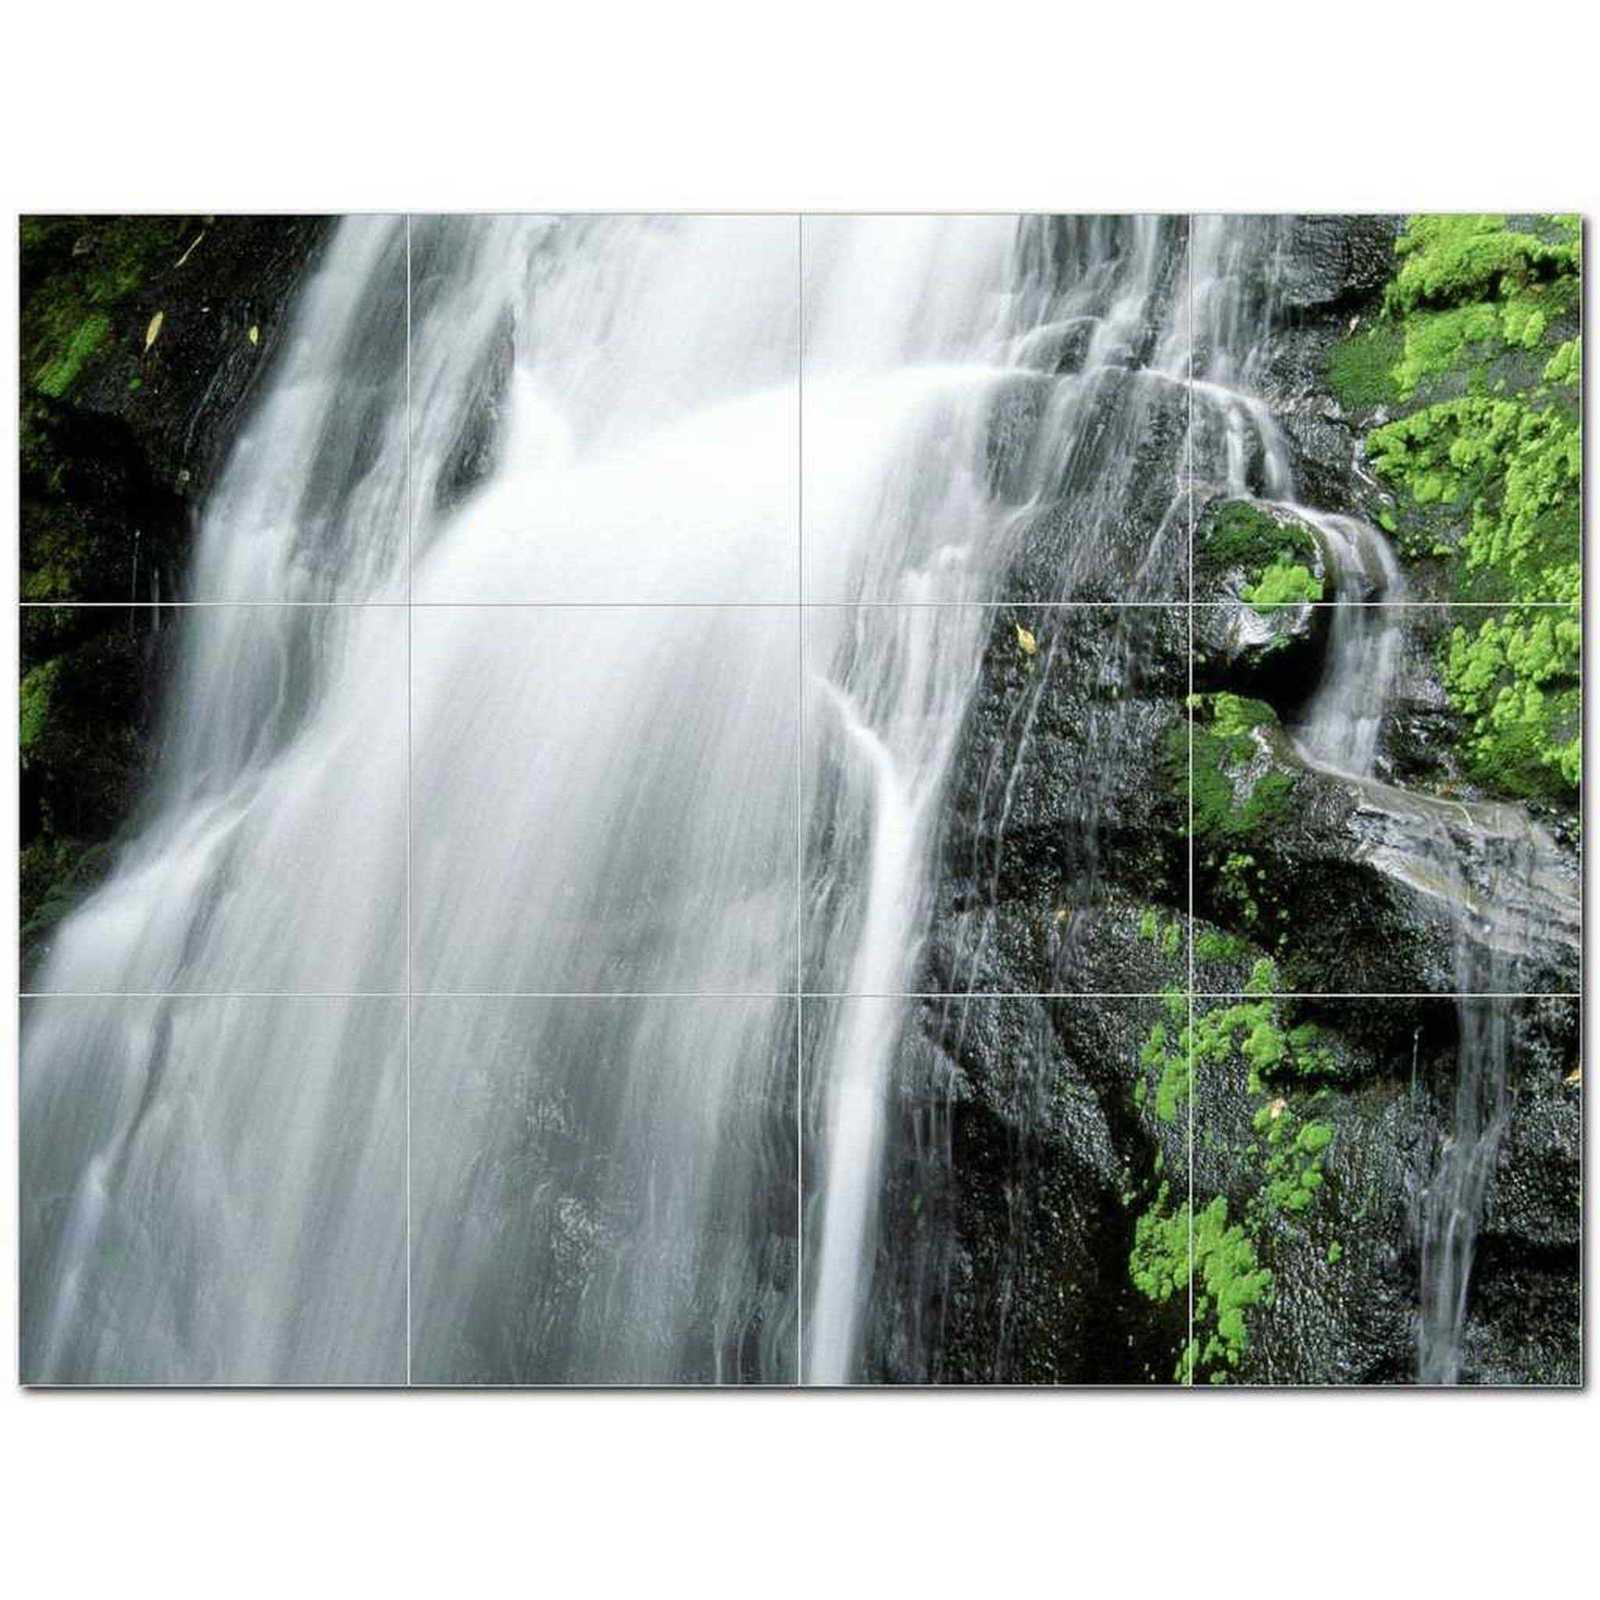 Primary image for Waterfalls Picture Ceramic Tile Mural Kitchen Backsplash Bathroom Shower BAZ4062